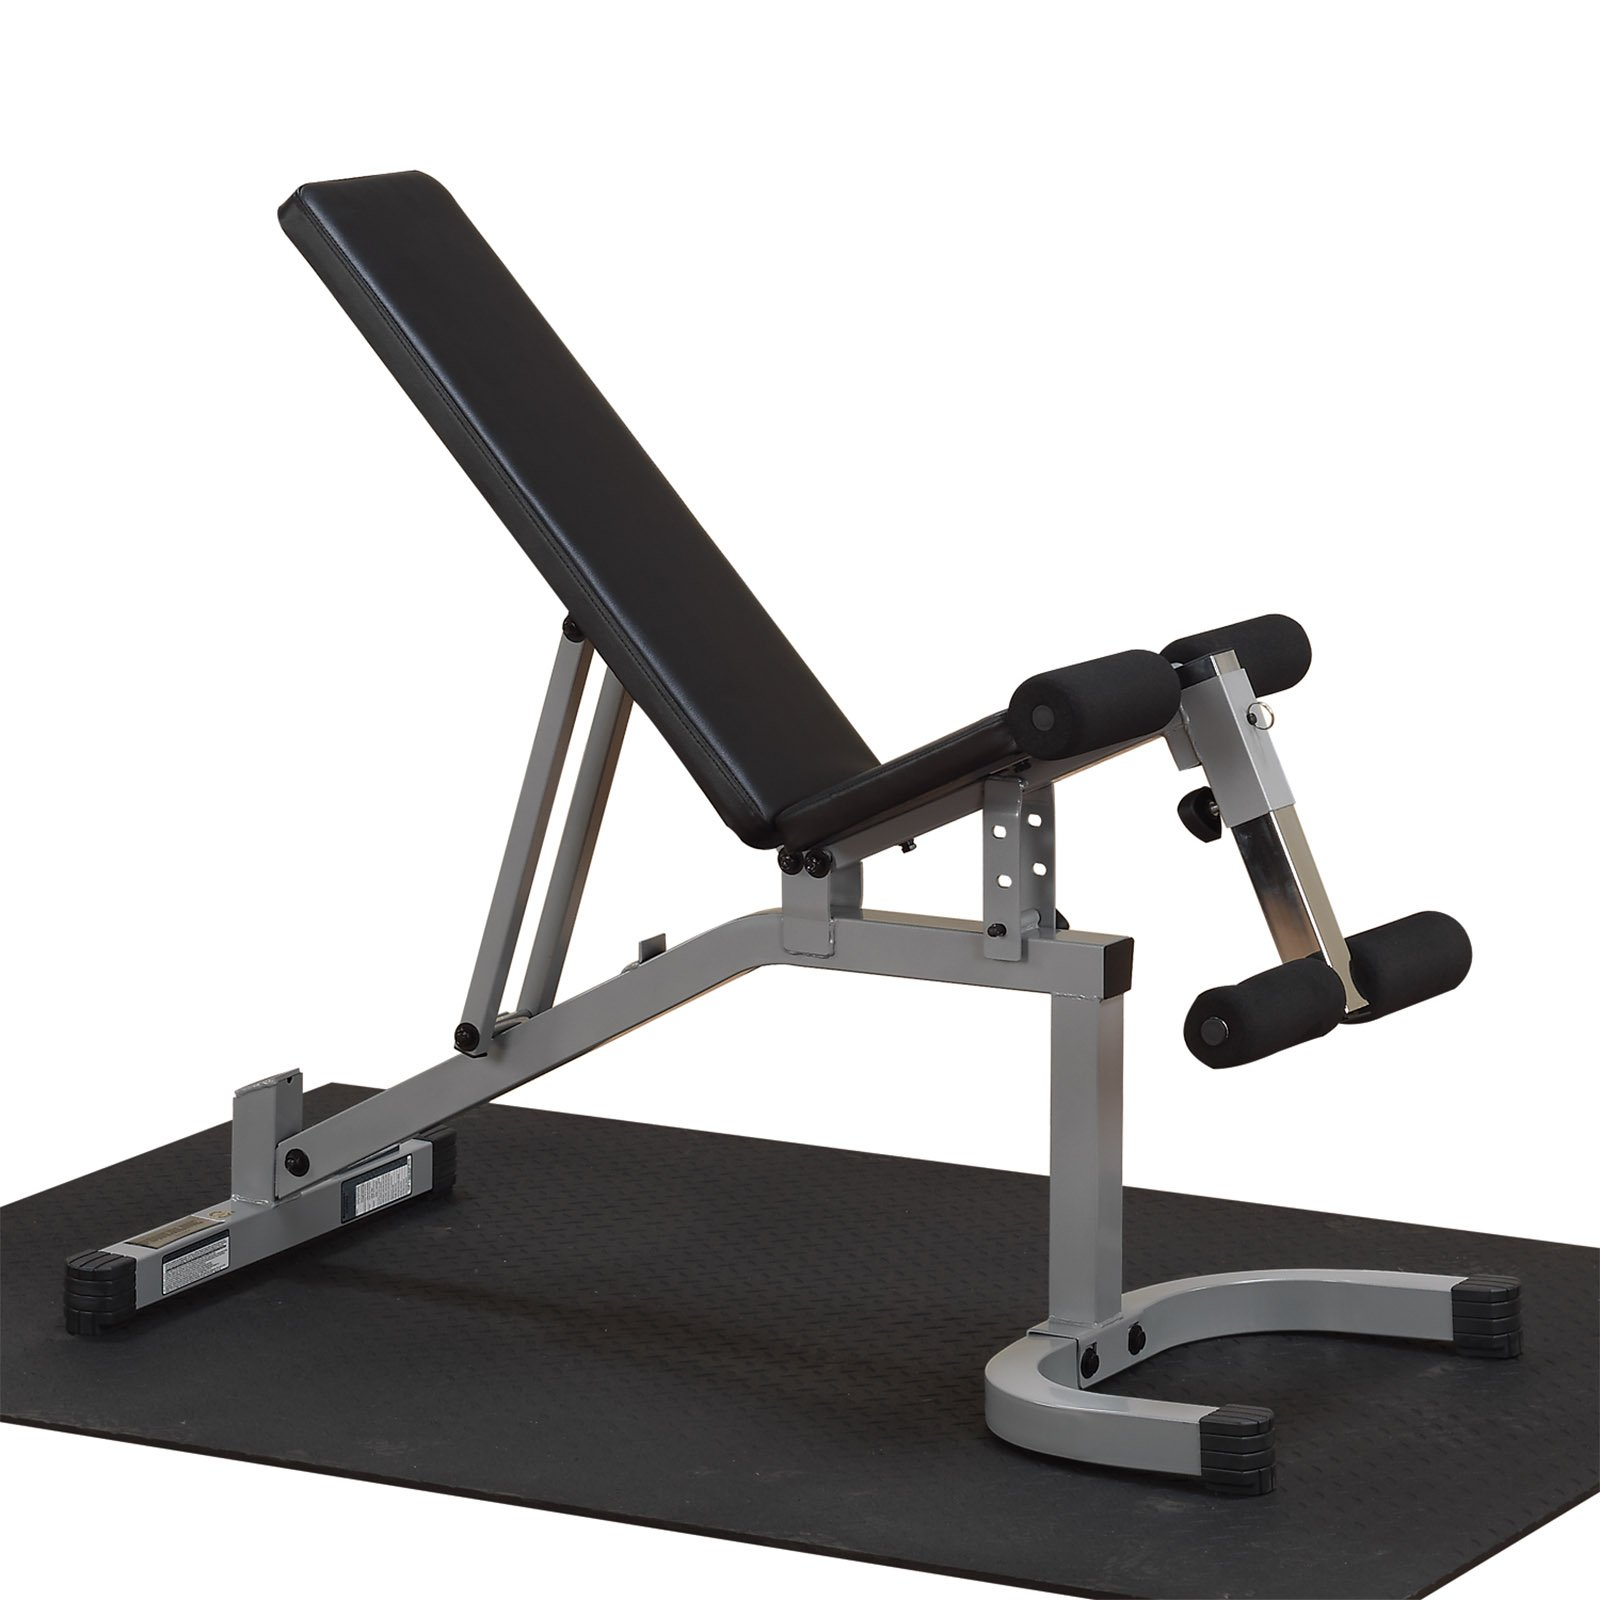 Craigslist Weight Bench | Craigslist Bench Press | Incline Bench Sale